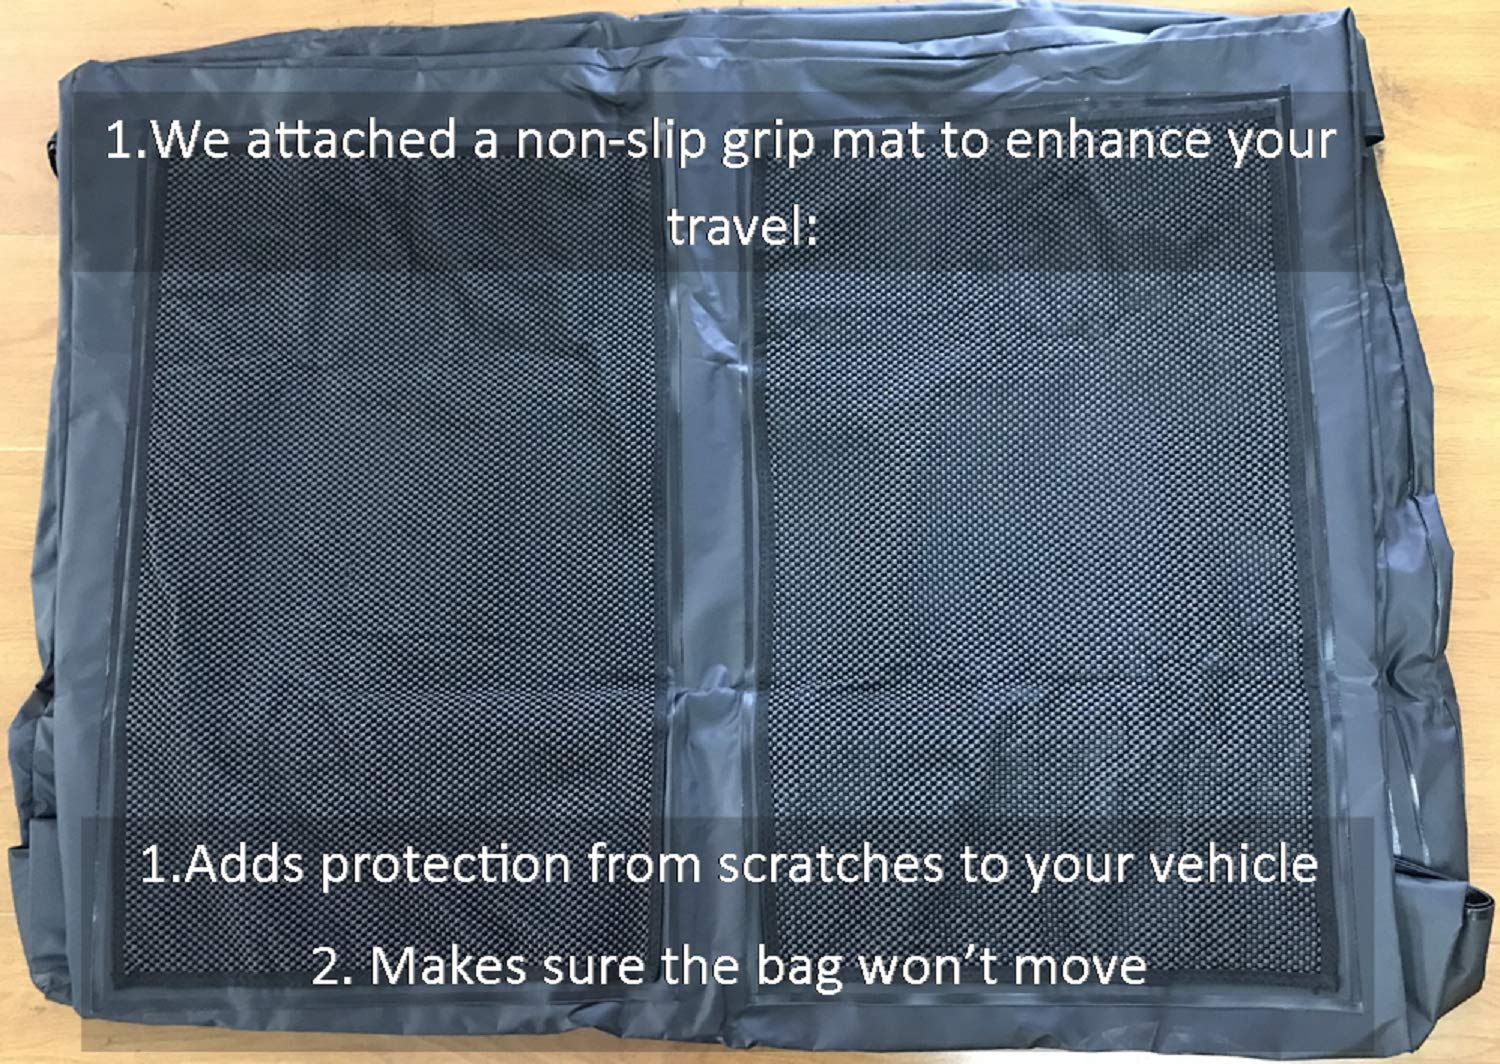 Perfection Updated Car Roof Bag Luggage Carrier Cargo Storage Roofbag for Cars w/o Racks, Attached Non-Slip Mat, Extra Rooftop Padding, Enhanced Safety Buckle by Perfection (Image #2)